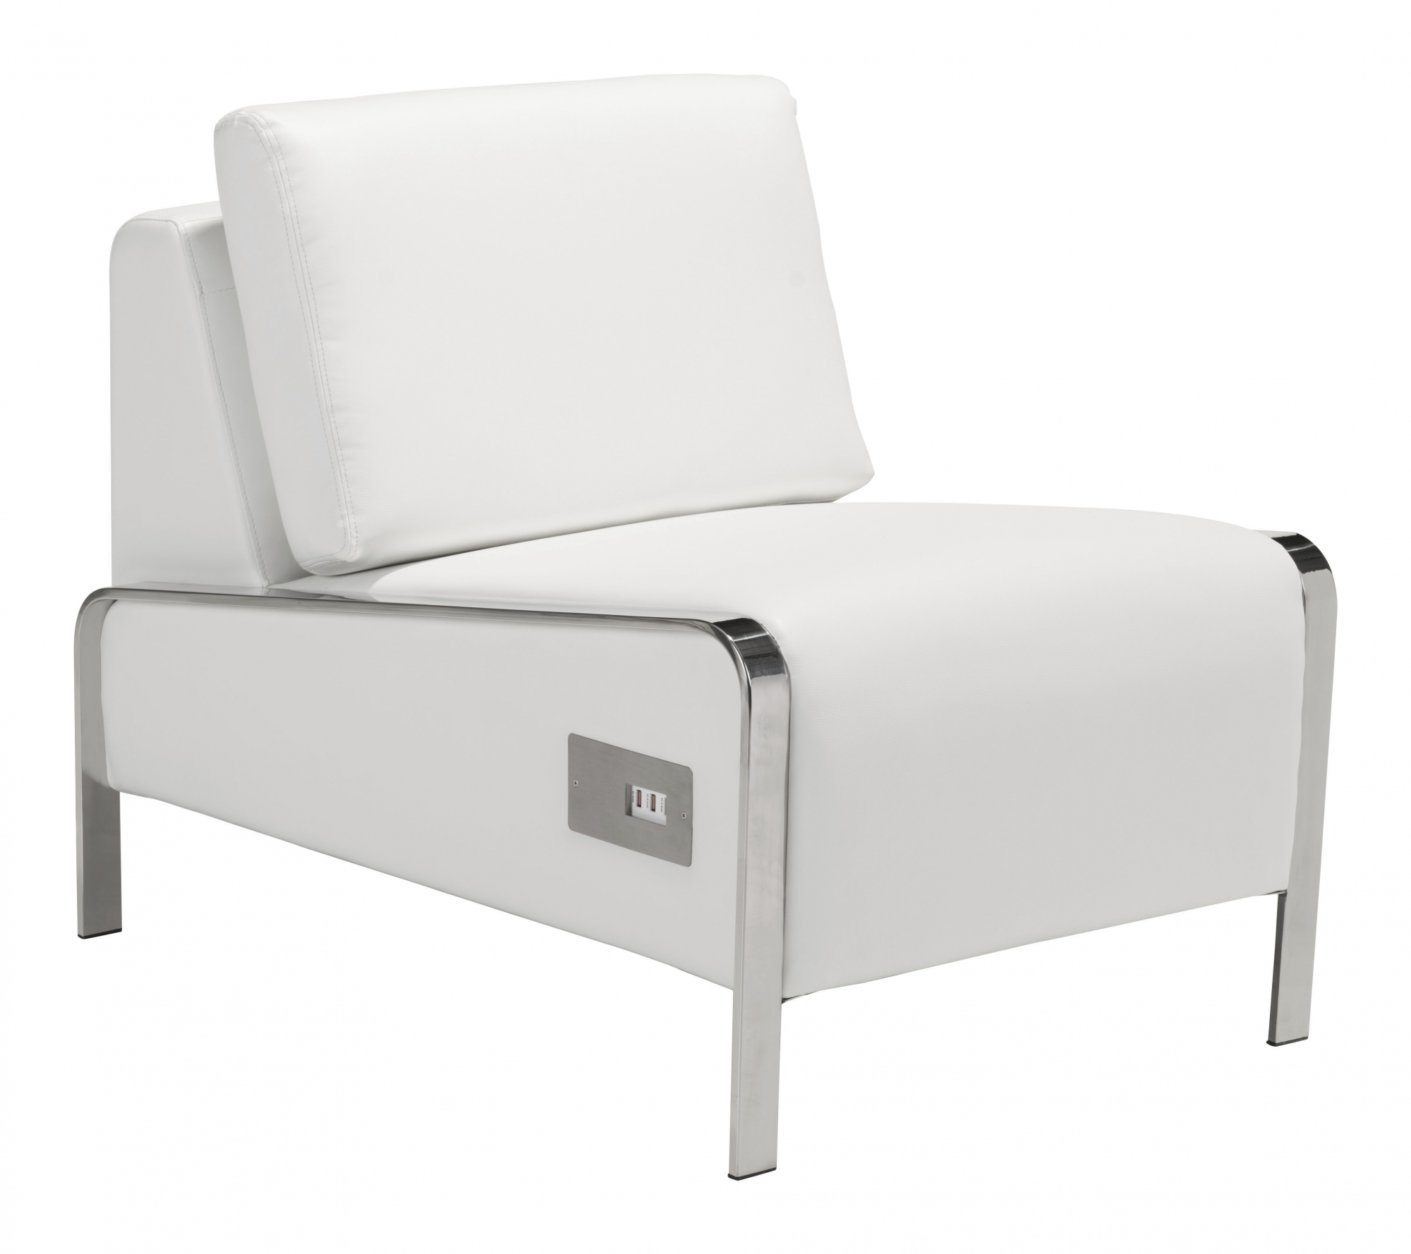 This undated photo provided by AllModern shows the Leeanne slipper chair from AllModern, which comes in white or black leatherette, and is equipped with three USB ports in the base. (AllModern via AP)